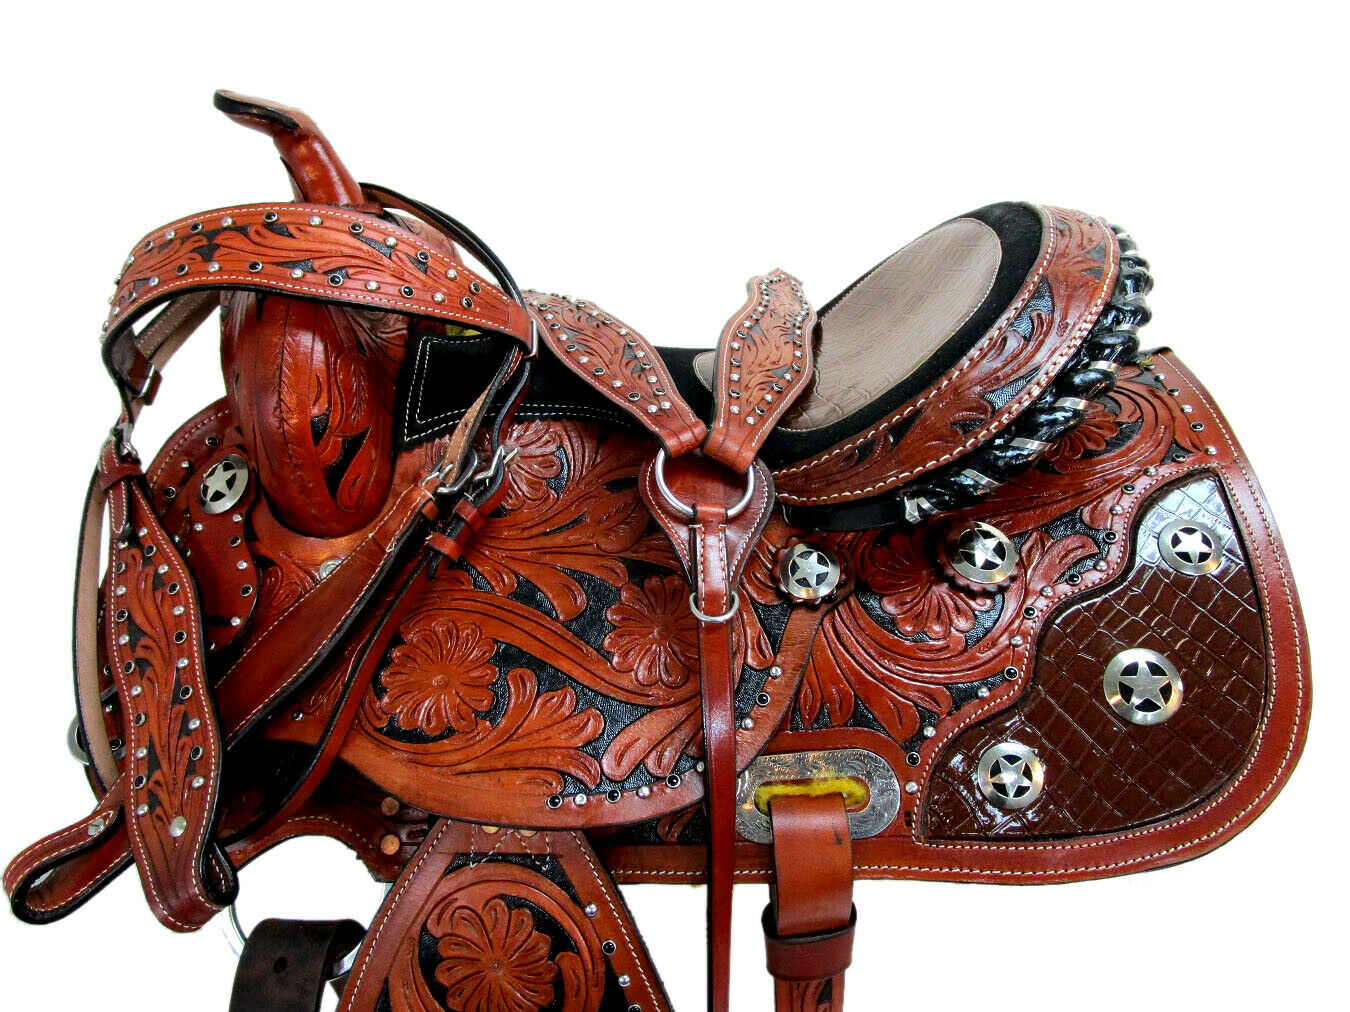 COWGIRL WESTERN SADDLE 15 16 PLEASURE TRAIL BLING SHOW TOOLED LEATHER SHOW TACK